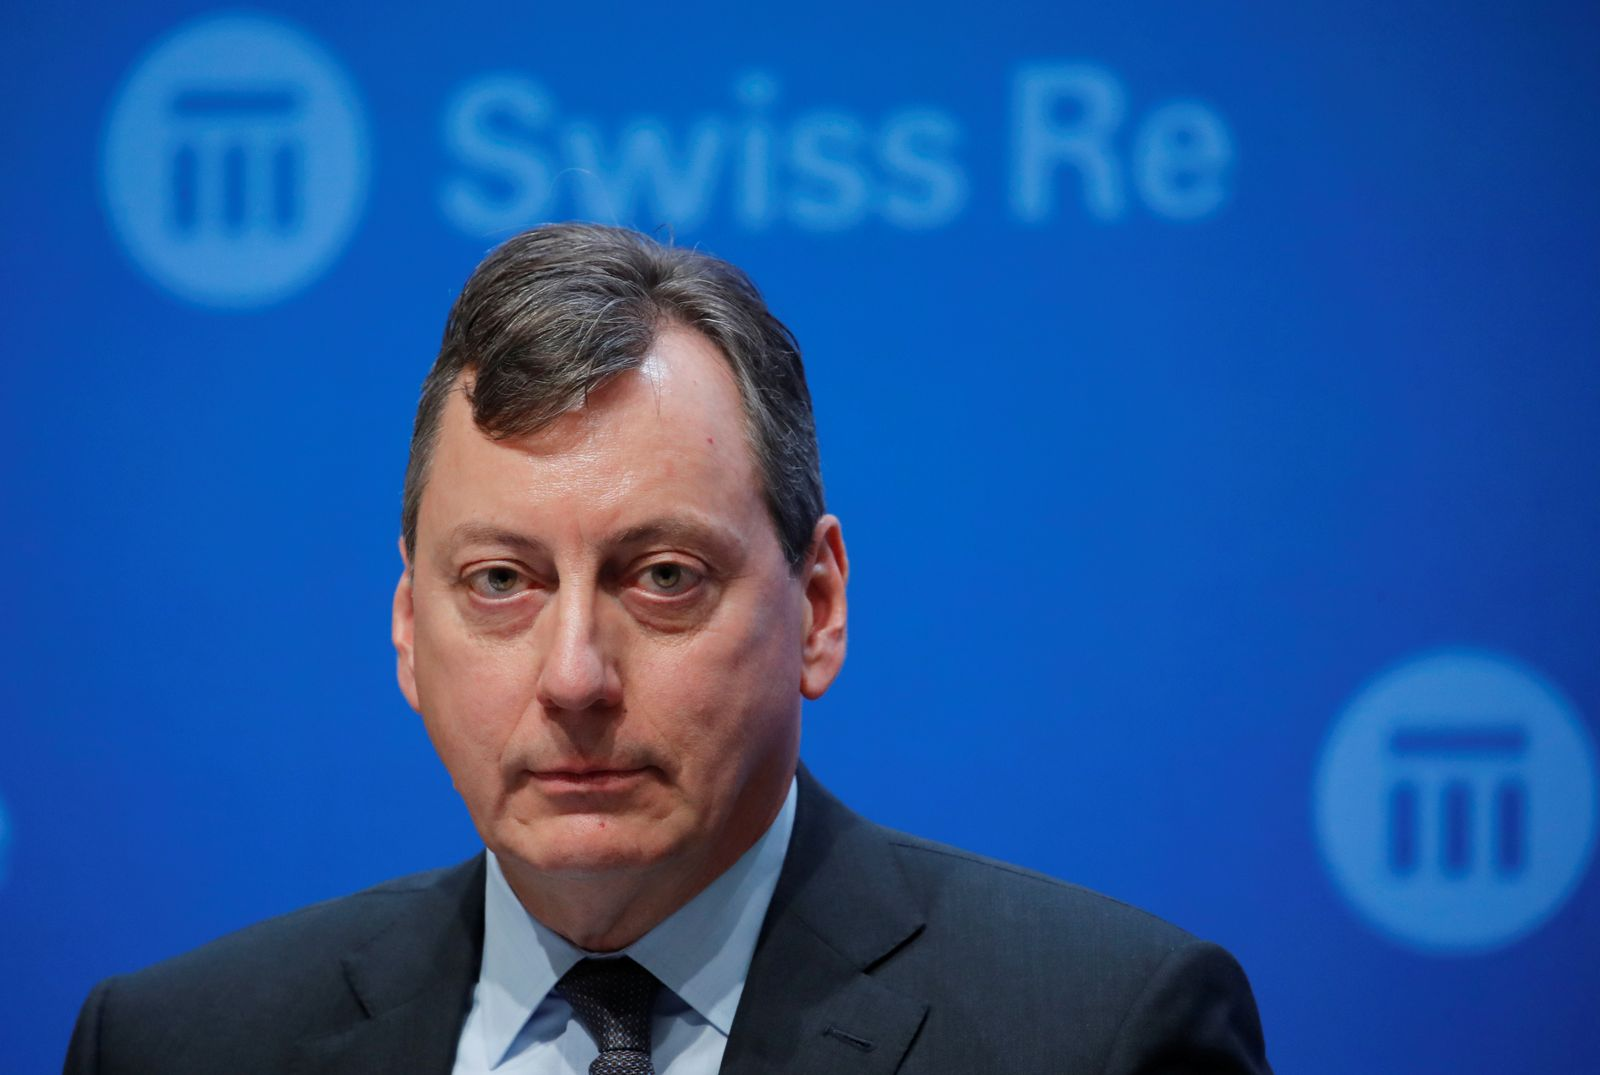 CFO Dacey of reinsurer Swiss Re addresses a news conference in Zurich